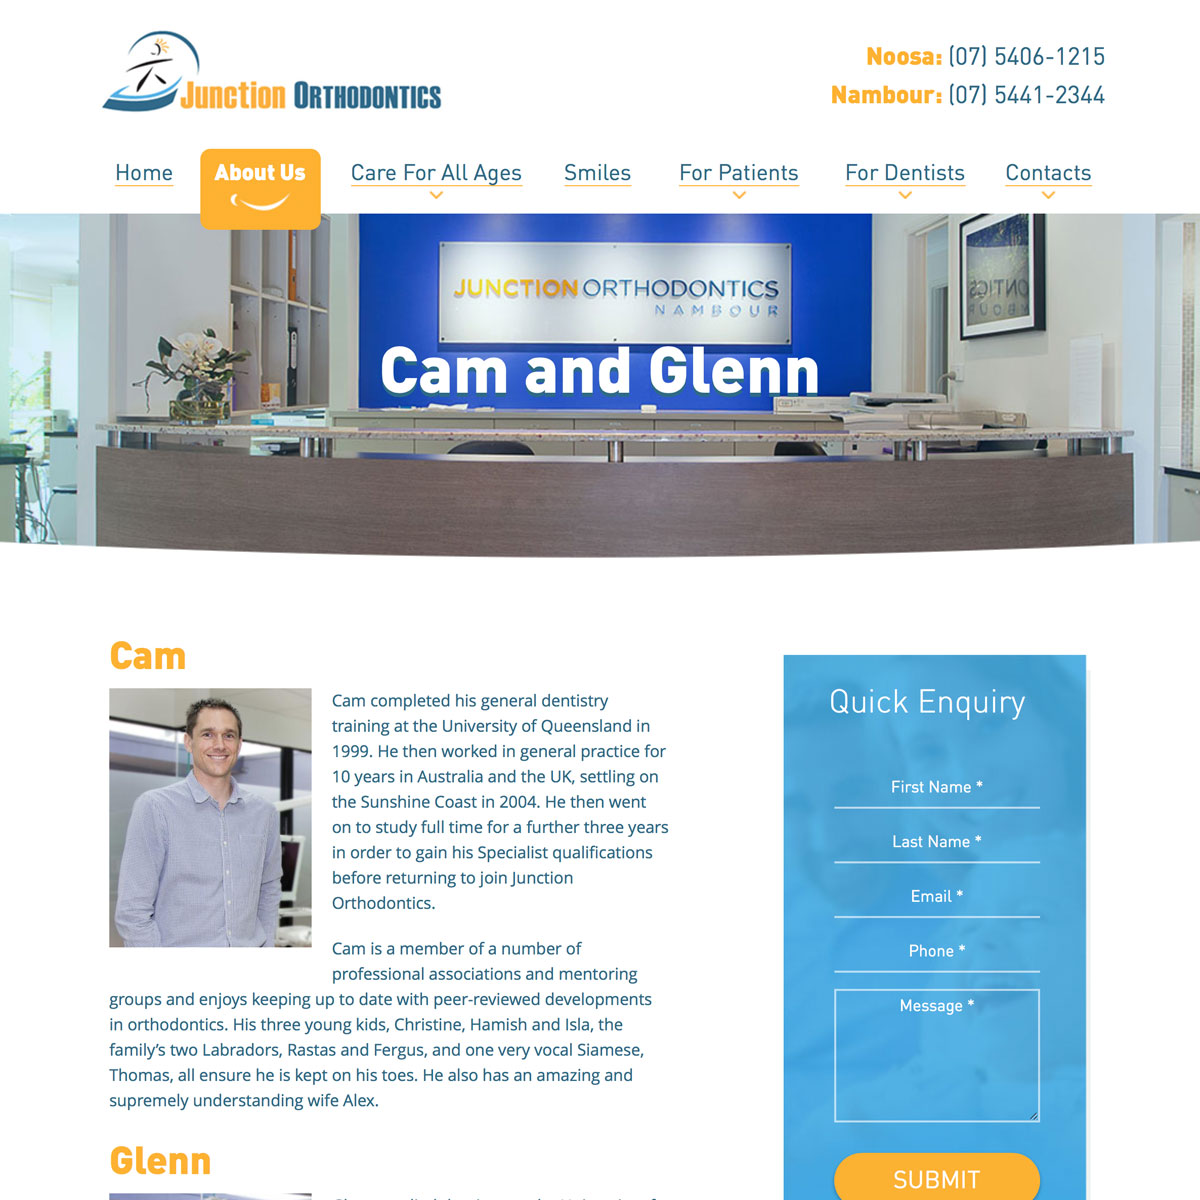 Junction Orthodontics - Cam and Glenn